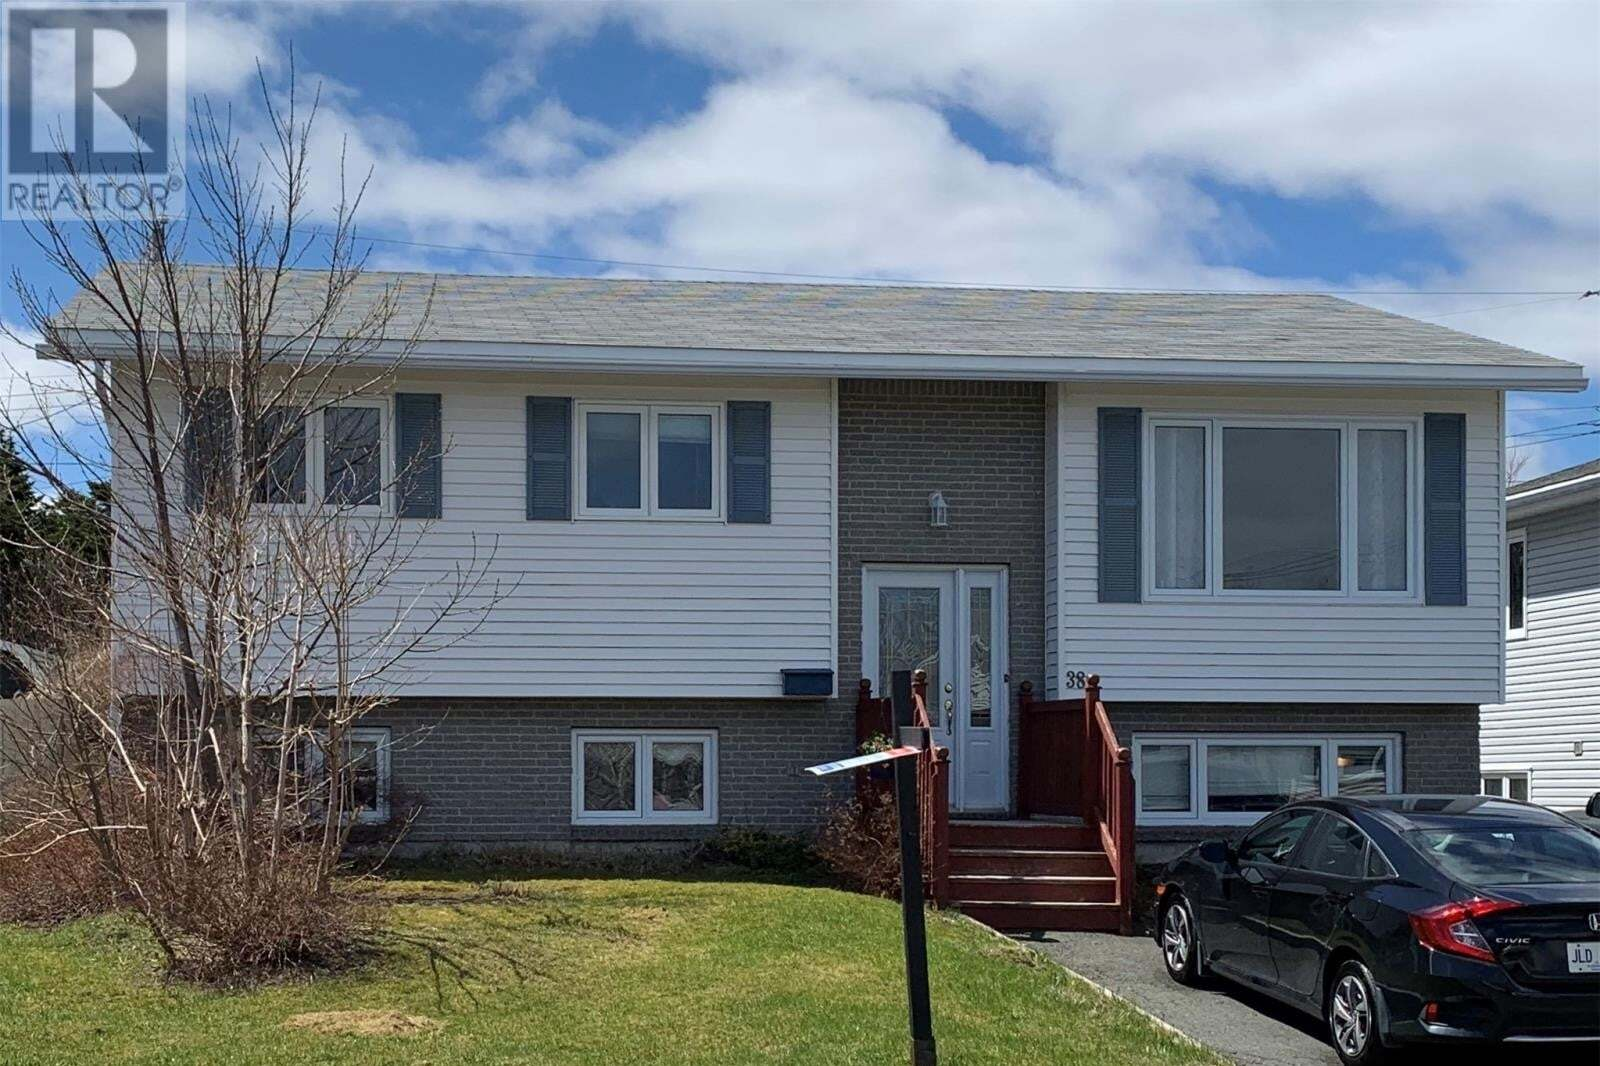 House for sale at 38 Nelder Dr Mount Pearl Newfoundland - MLS: 1212244